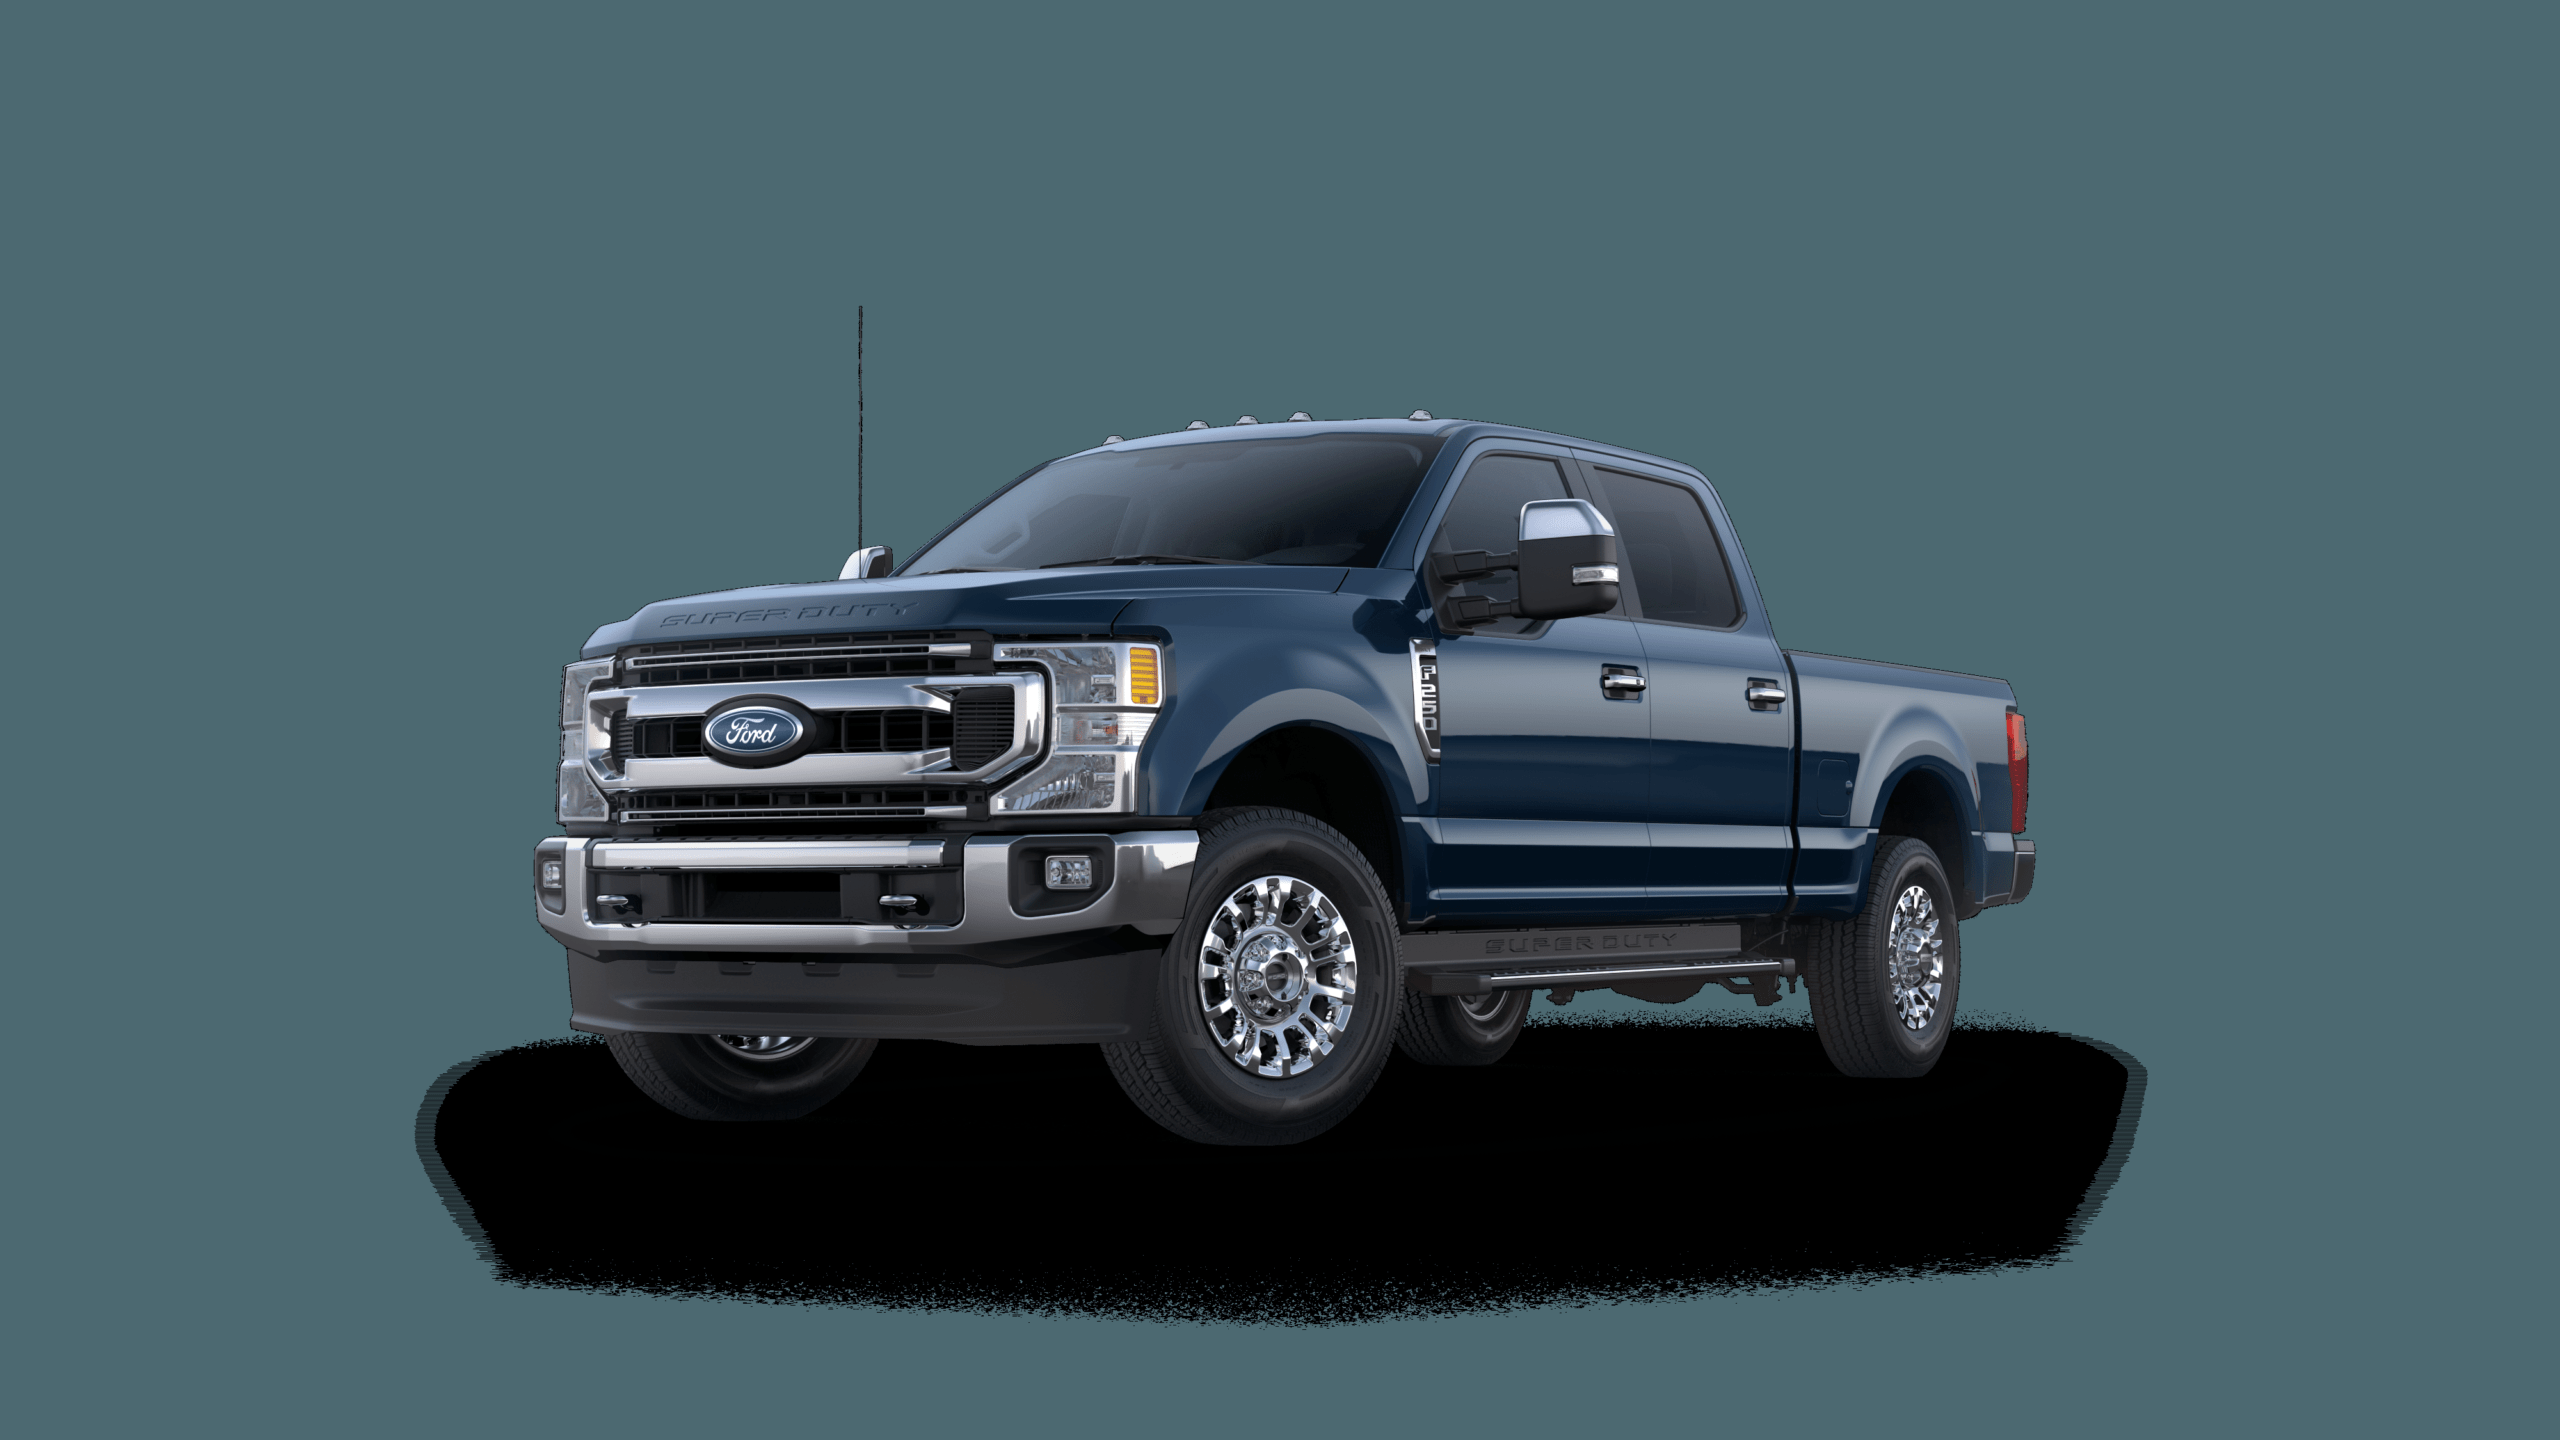 2023 Ford F250 Super Duty Redesign